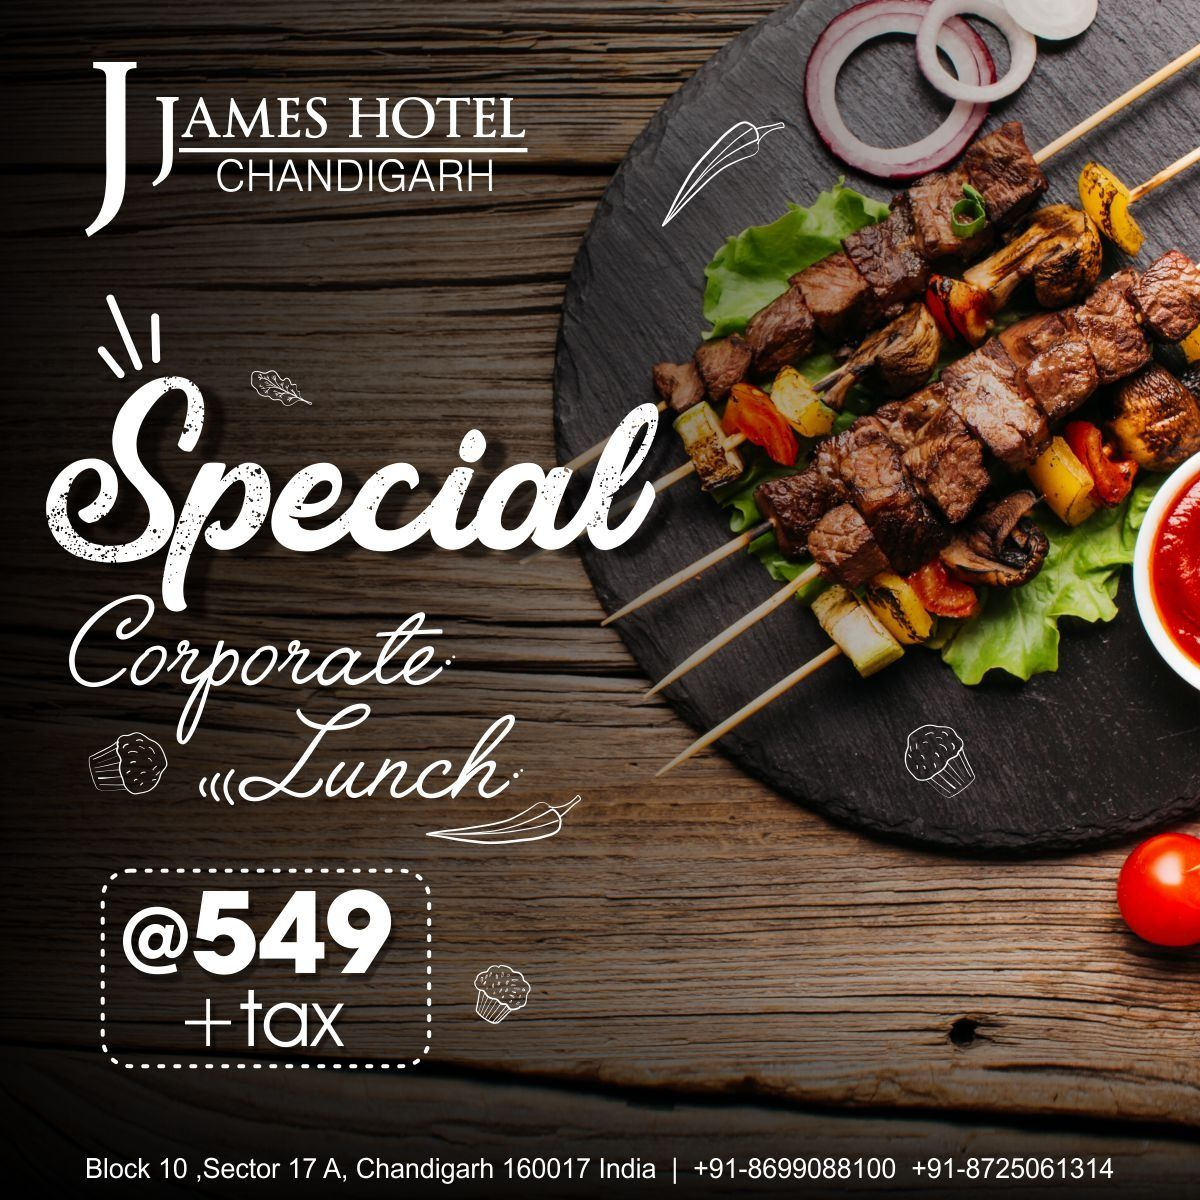 Loosen up your ties and make most of the delicious corporate lunch buffet at James Hotel, Chandigarh with an exclusive price only for our hardworking corporates.   Timings – 12 Noon to 3 PM (Everyday)  For INR 549 + Taxes  For bookings, contact: 8699088100, 8725061314, 8725061315.